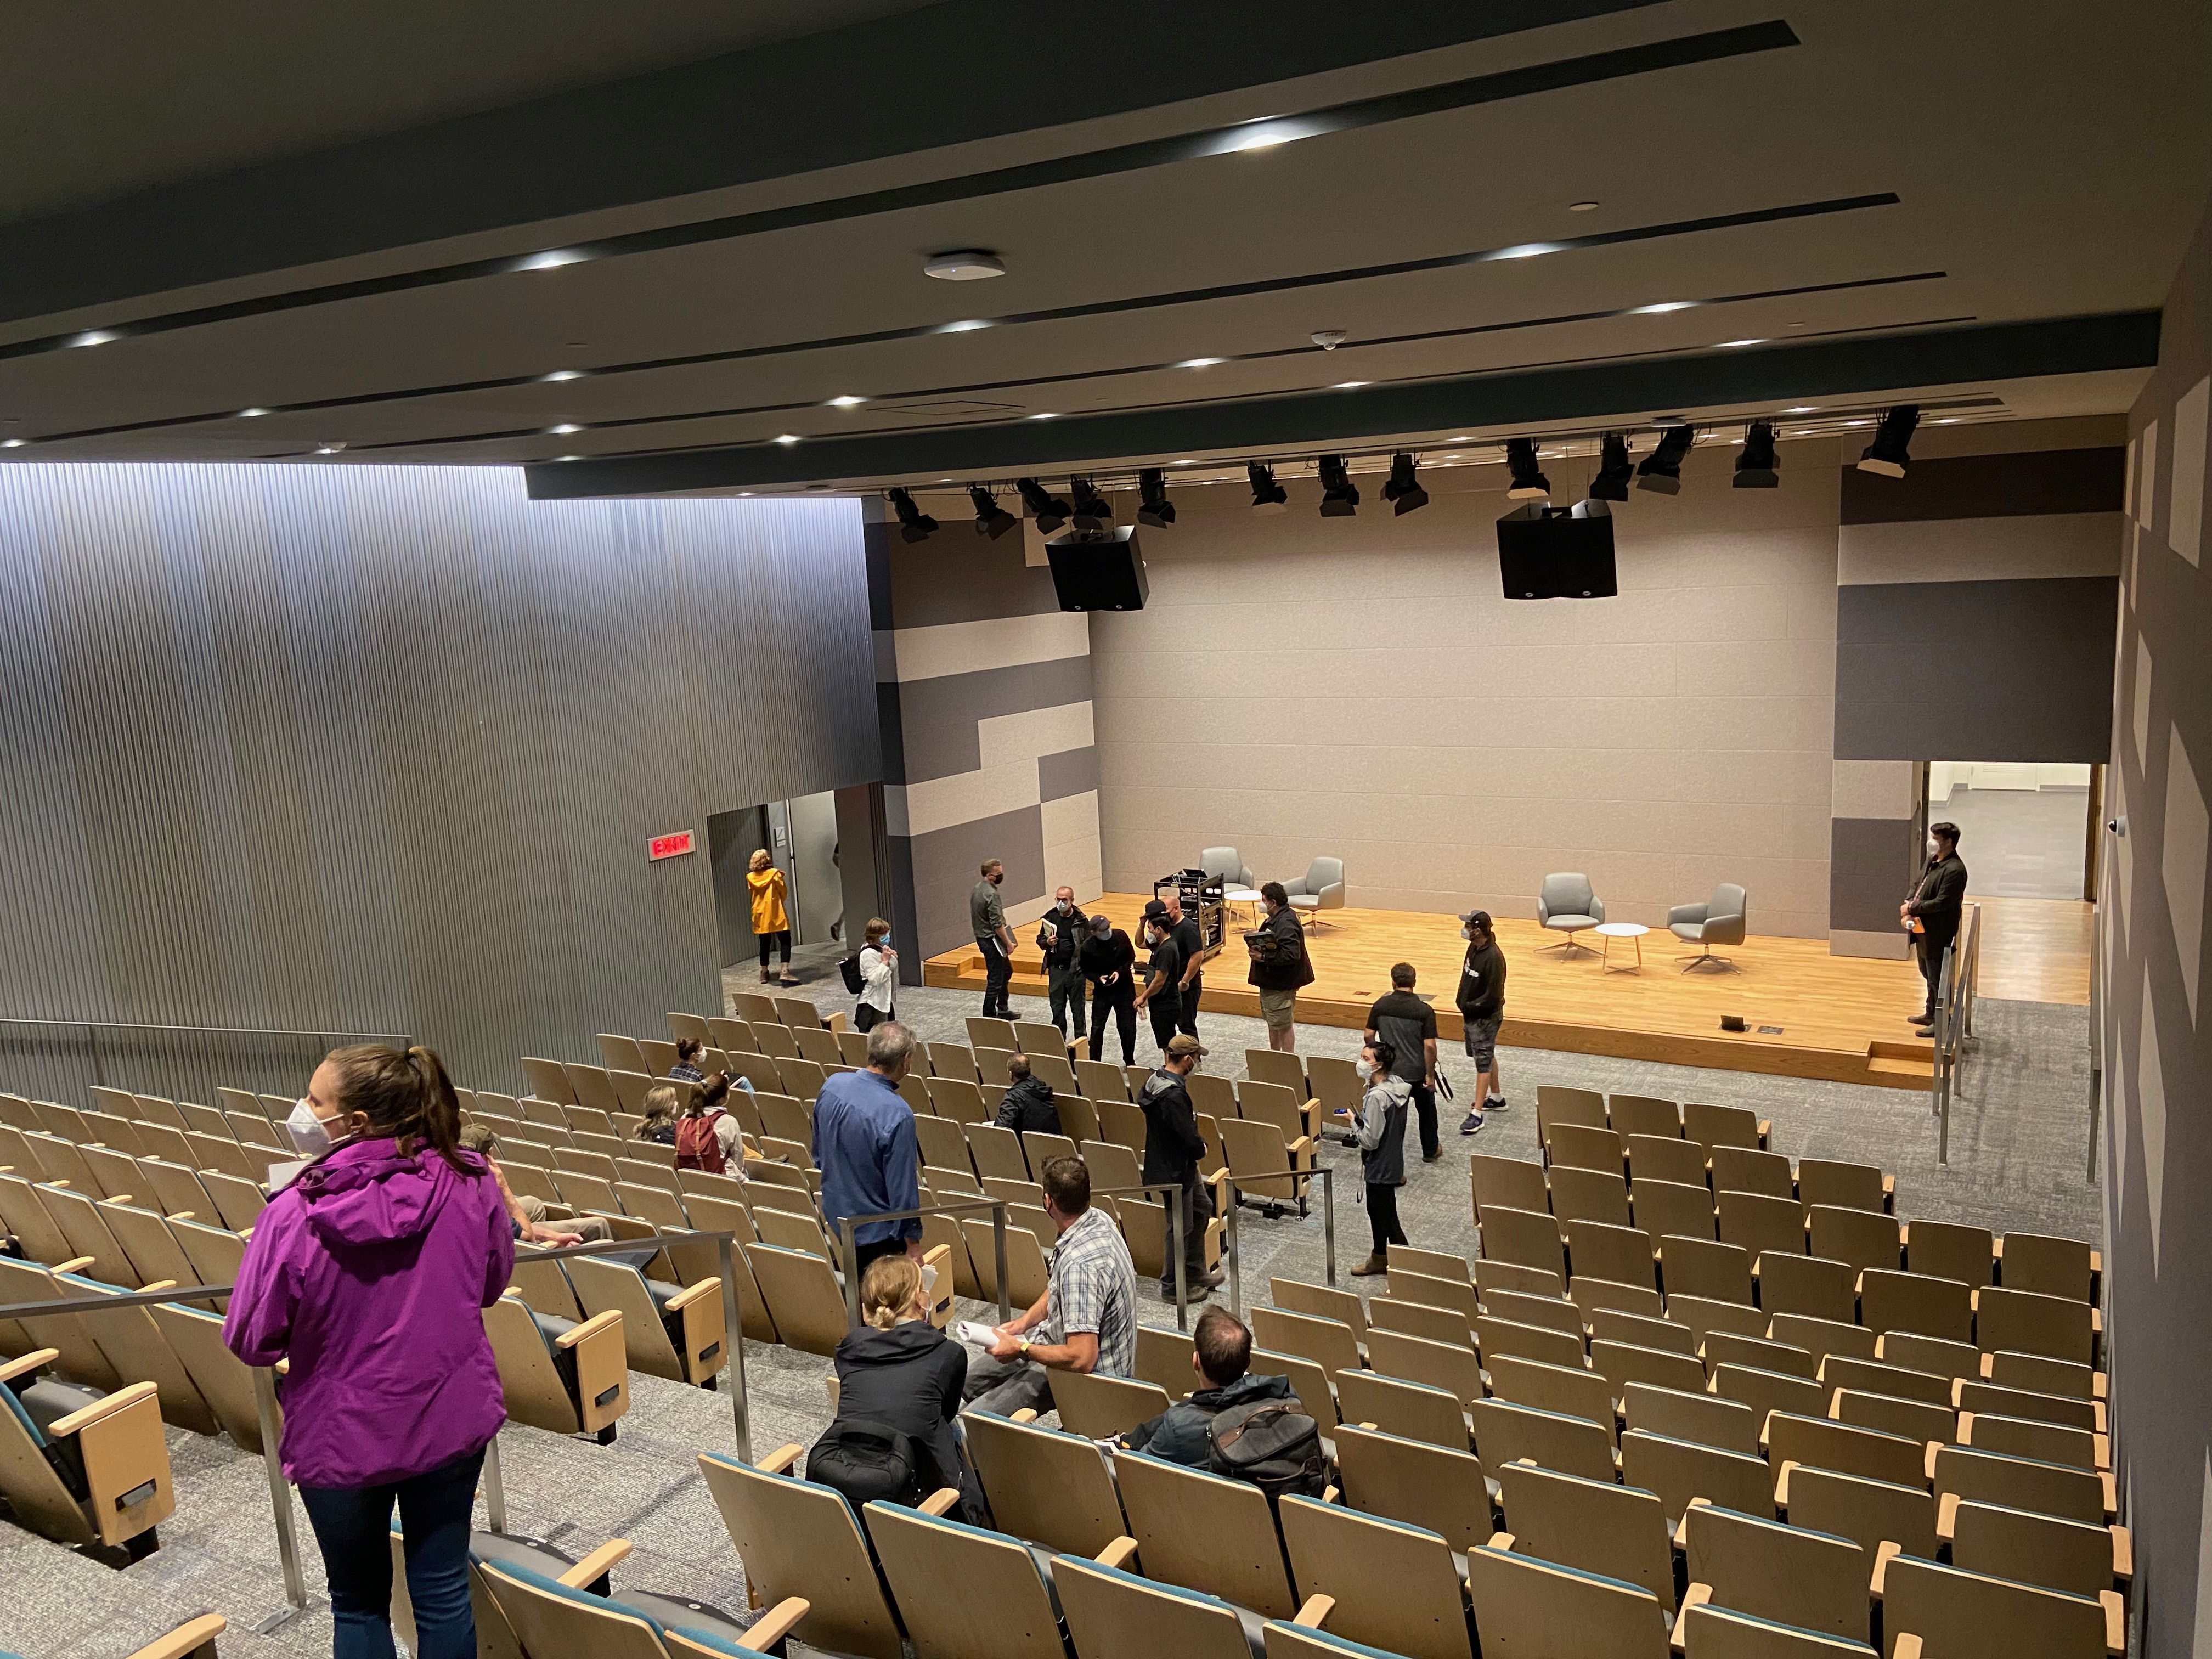 A photograph of people in the basement auditorium which has been revamped and brightened